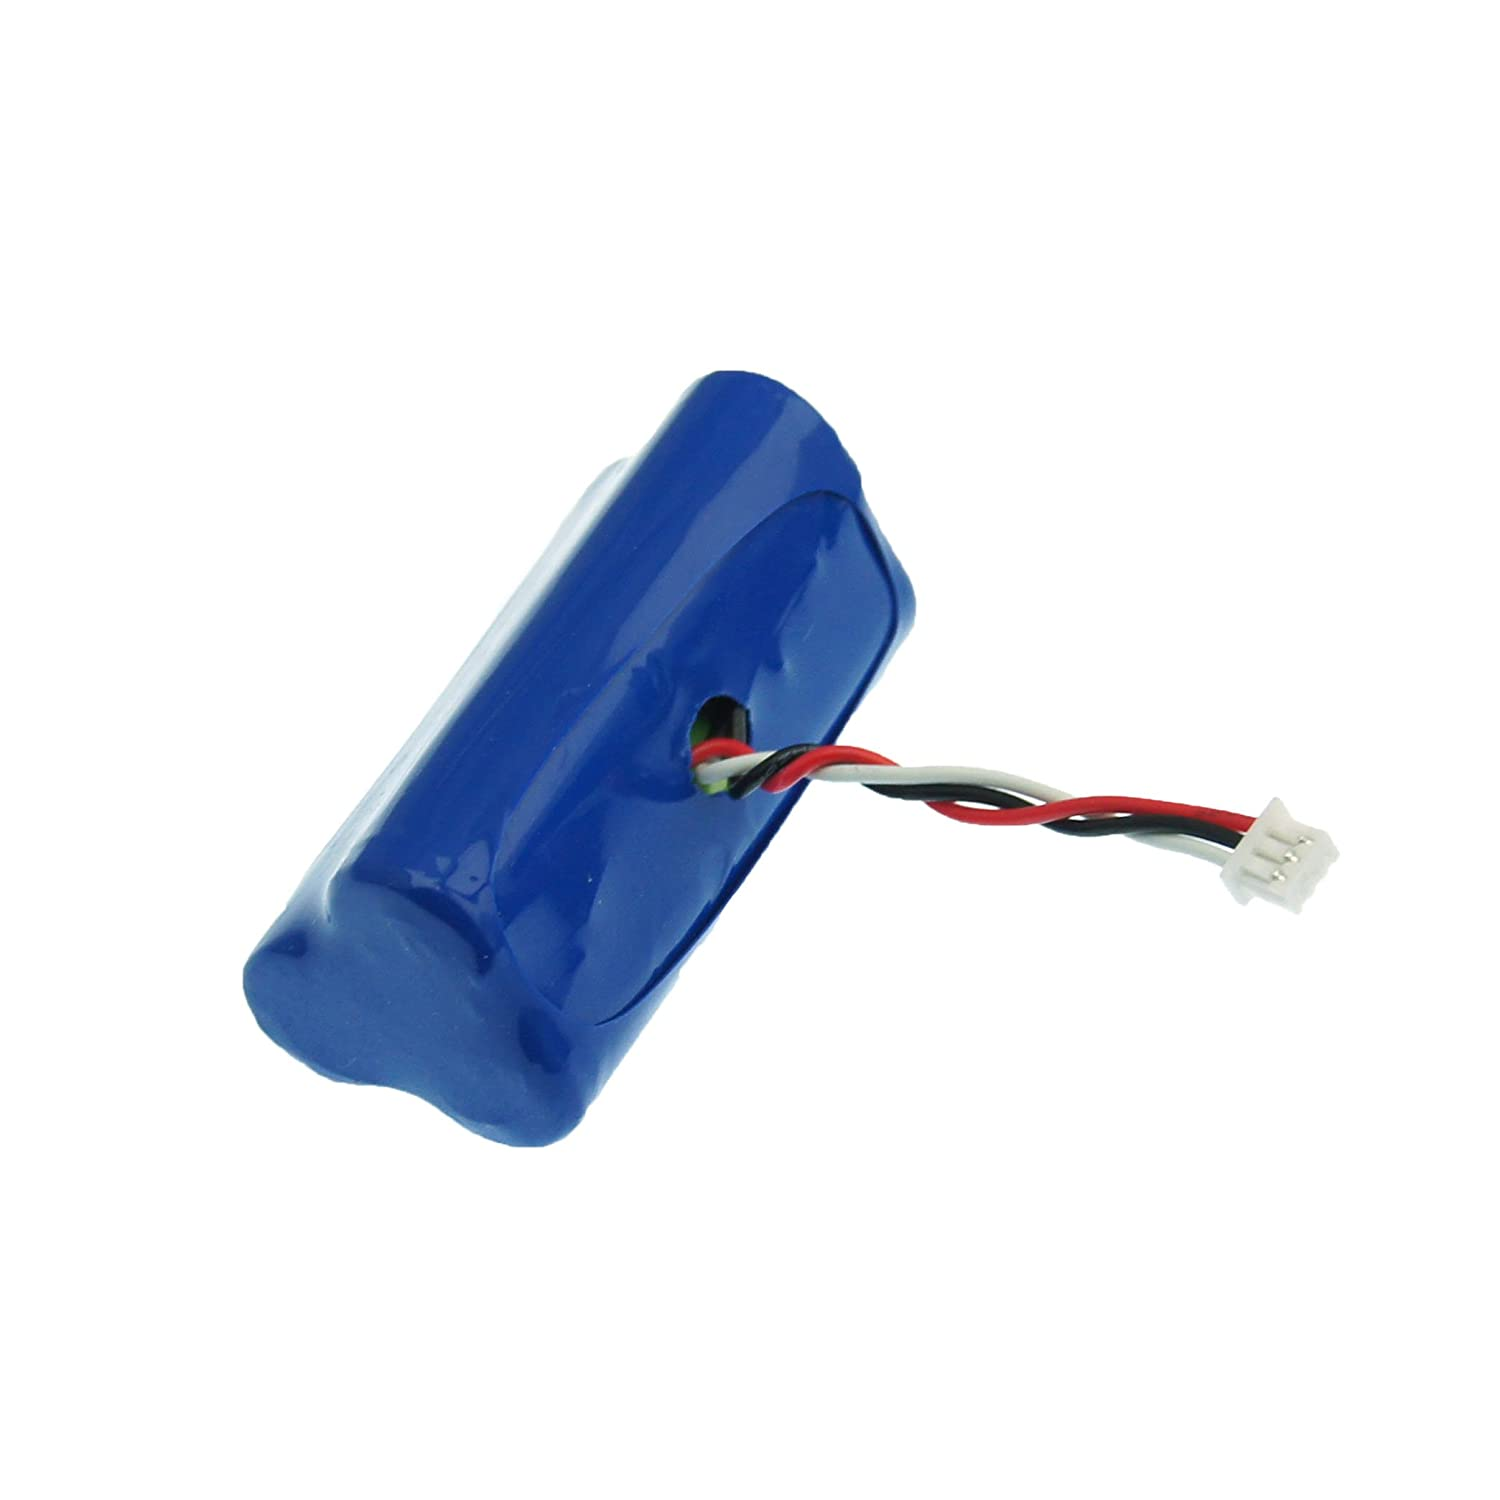 Battery 3.6V, 750mAh for Symbol Motorola LS4278, LS-4278, DS6878 Barcode Scanner Replacement for BTRY-LS42RAAOE-01, 82-67705-01 Complogics Ltd.